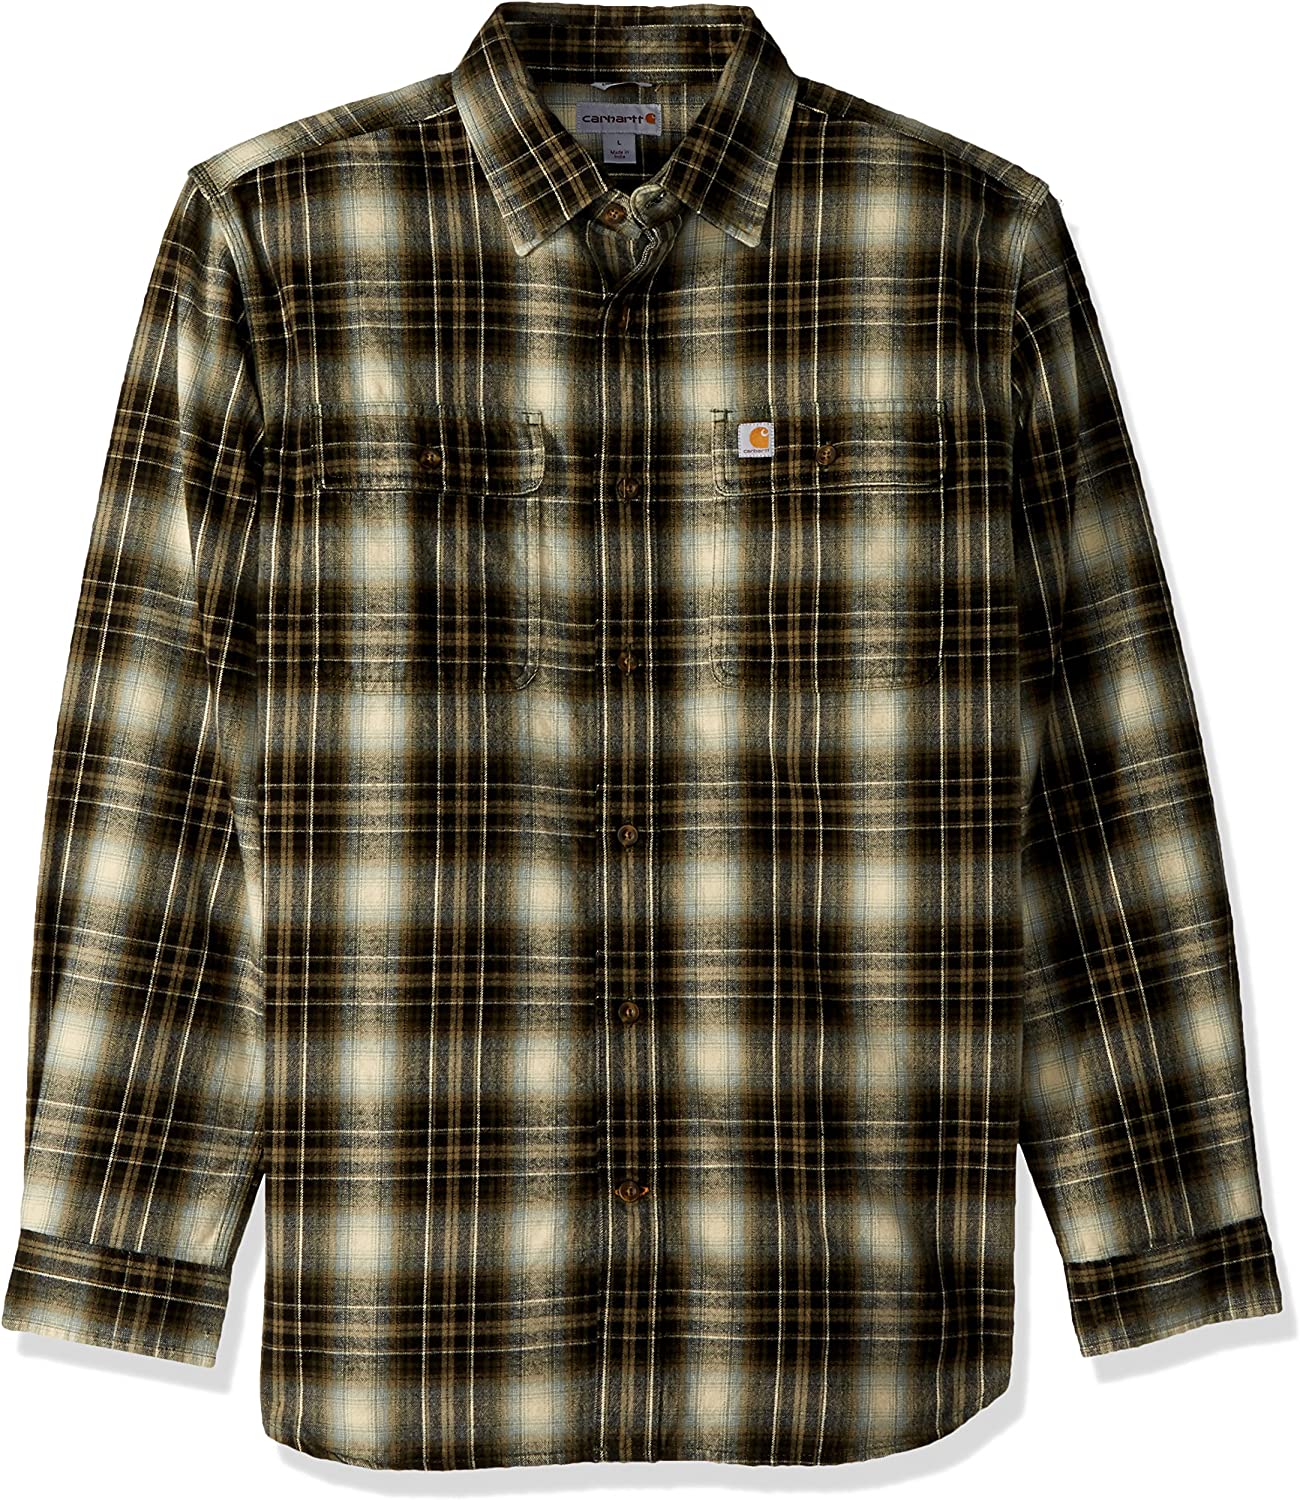 Carhartt Mens Hubbard Plaid Flannel Shirt, Burnt Olive, Small: Amazon.es: Ropa y accesorios